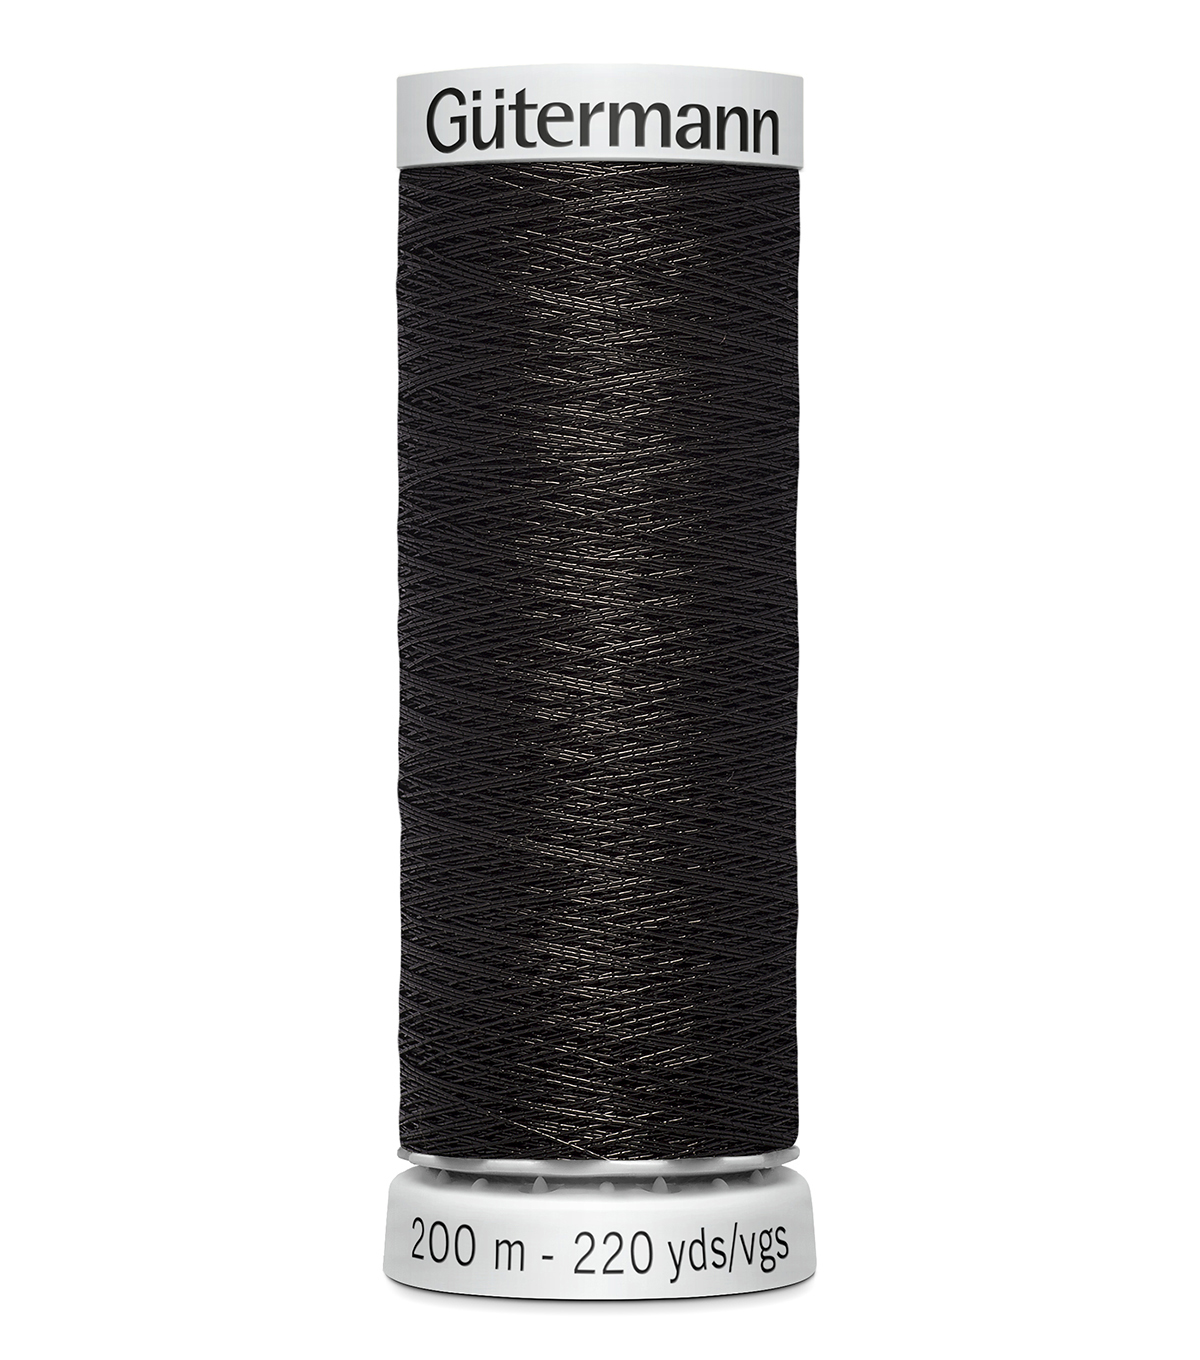 Gutermann 200M Dekor Thread, 200m Dekor Metallic-black